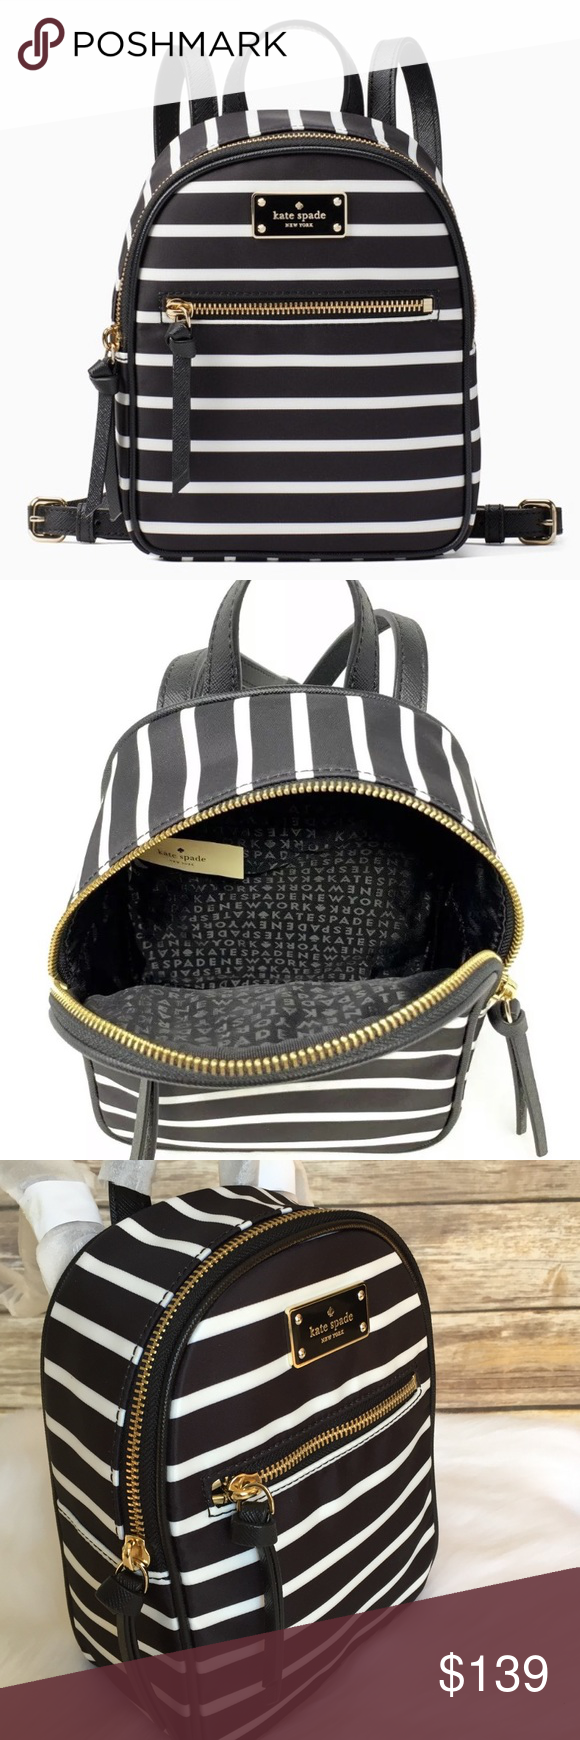 a296699286a8 Kate spade mini Bradley Wilson stripe backpack bag New with tag  amp   authentic guaranteed!